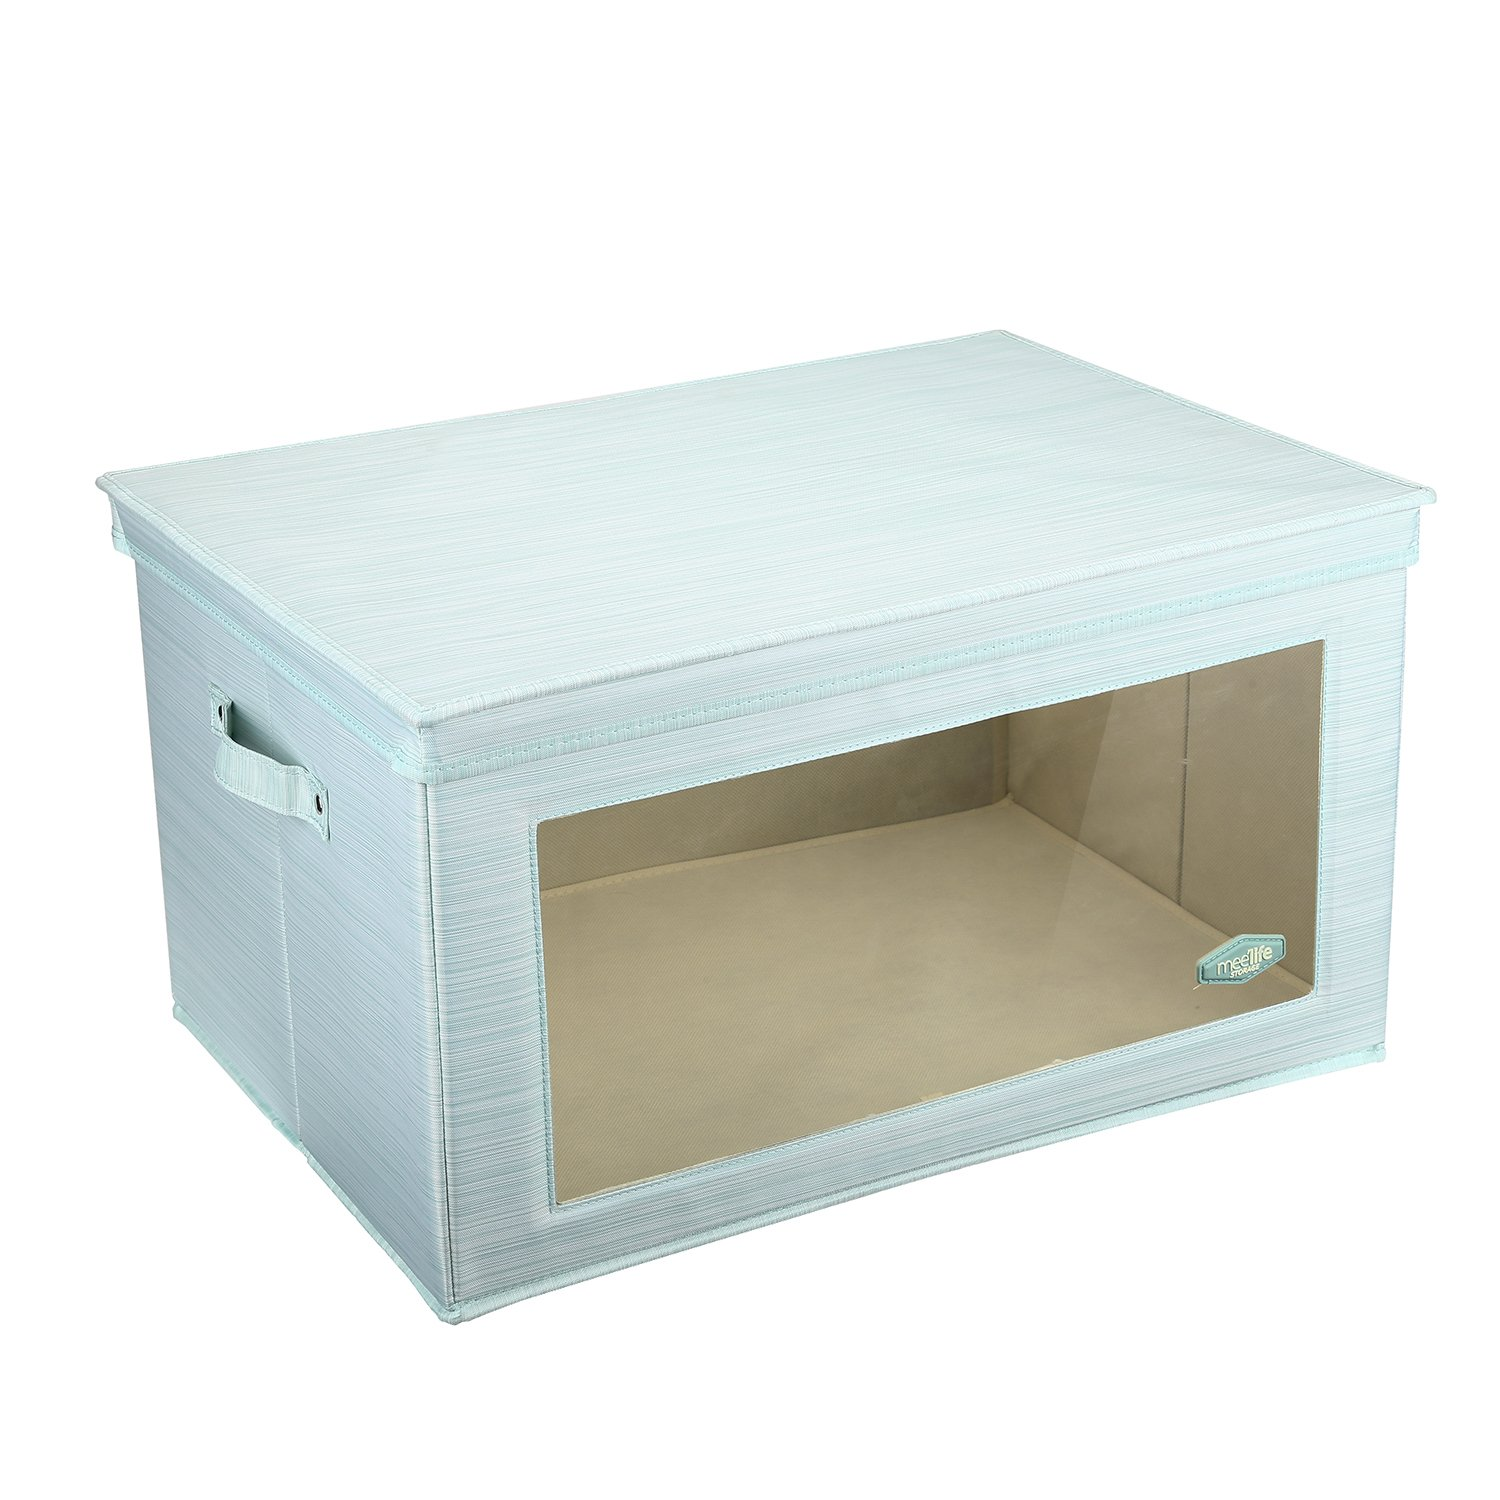 MEÉLIFE Storage Boxes with Window,Mee